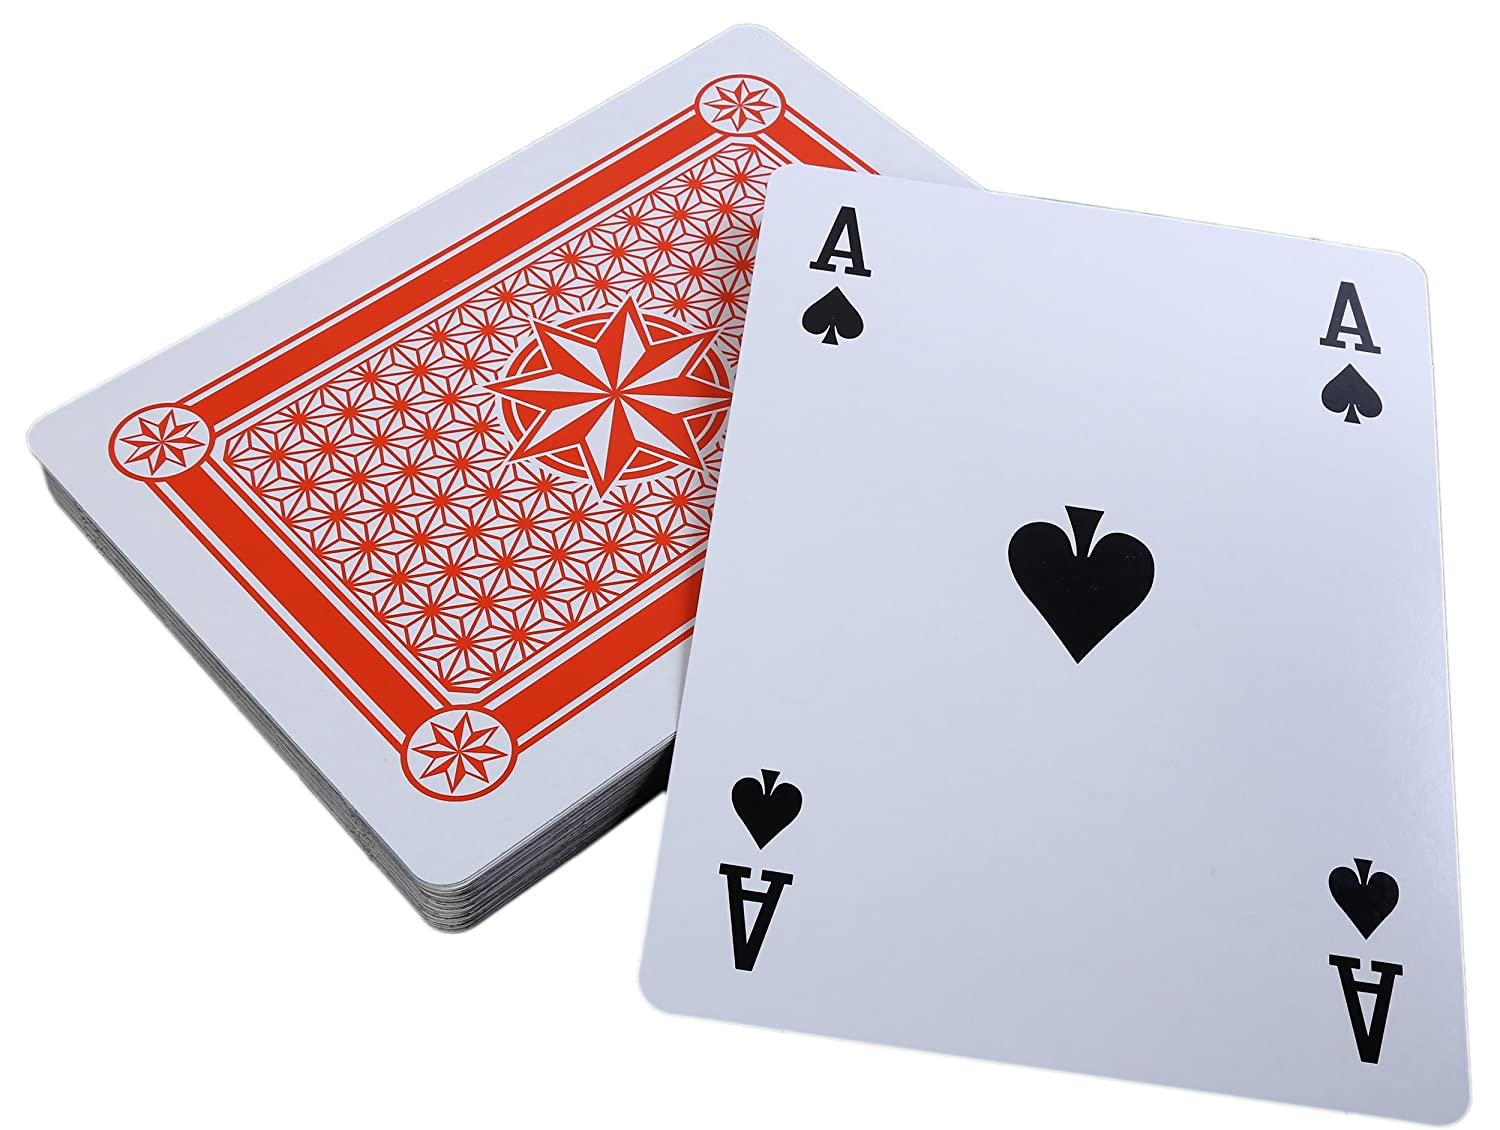 8 x 11 Inches SG/_B01MDRMZ7U/_US Juvale Super Big Giant Jumbo Playing Cards Full Deck Huge Standard Print Novelty Poker Index Playing Cards